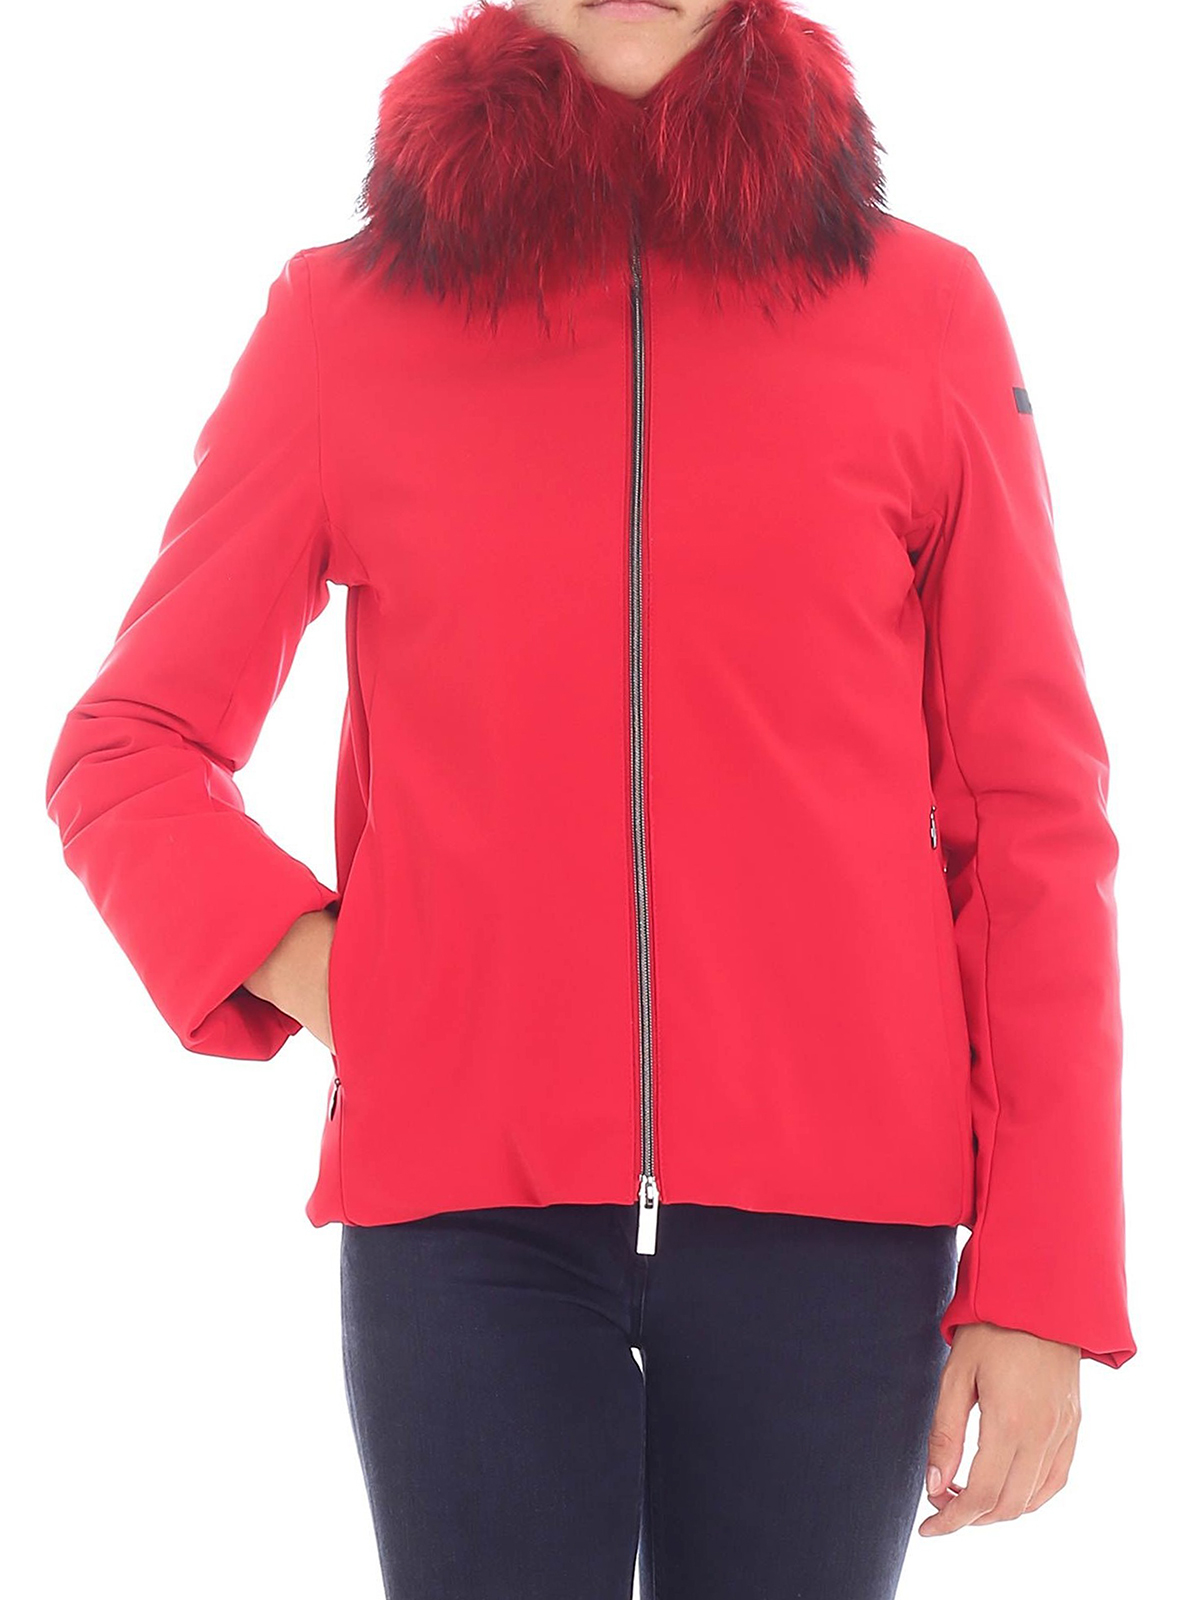 RRD Winter K Lady Fur red padded jacket padded jackets